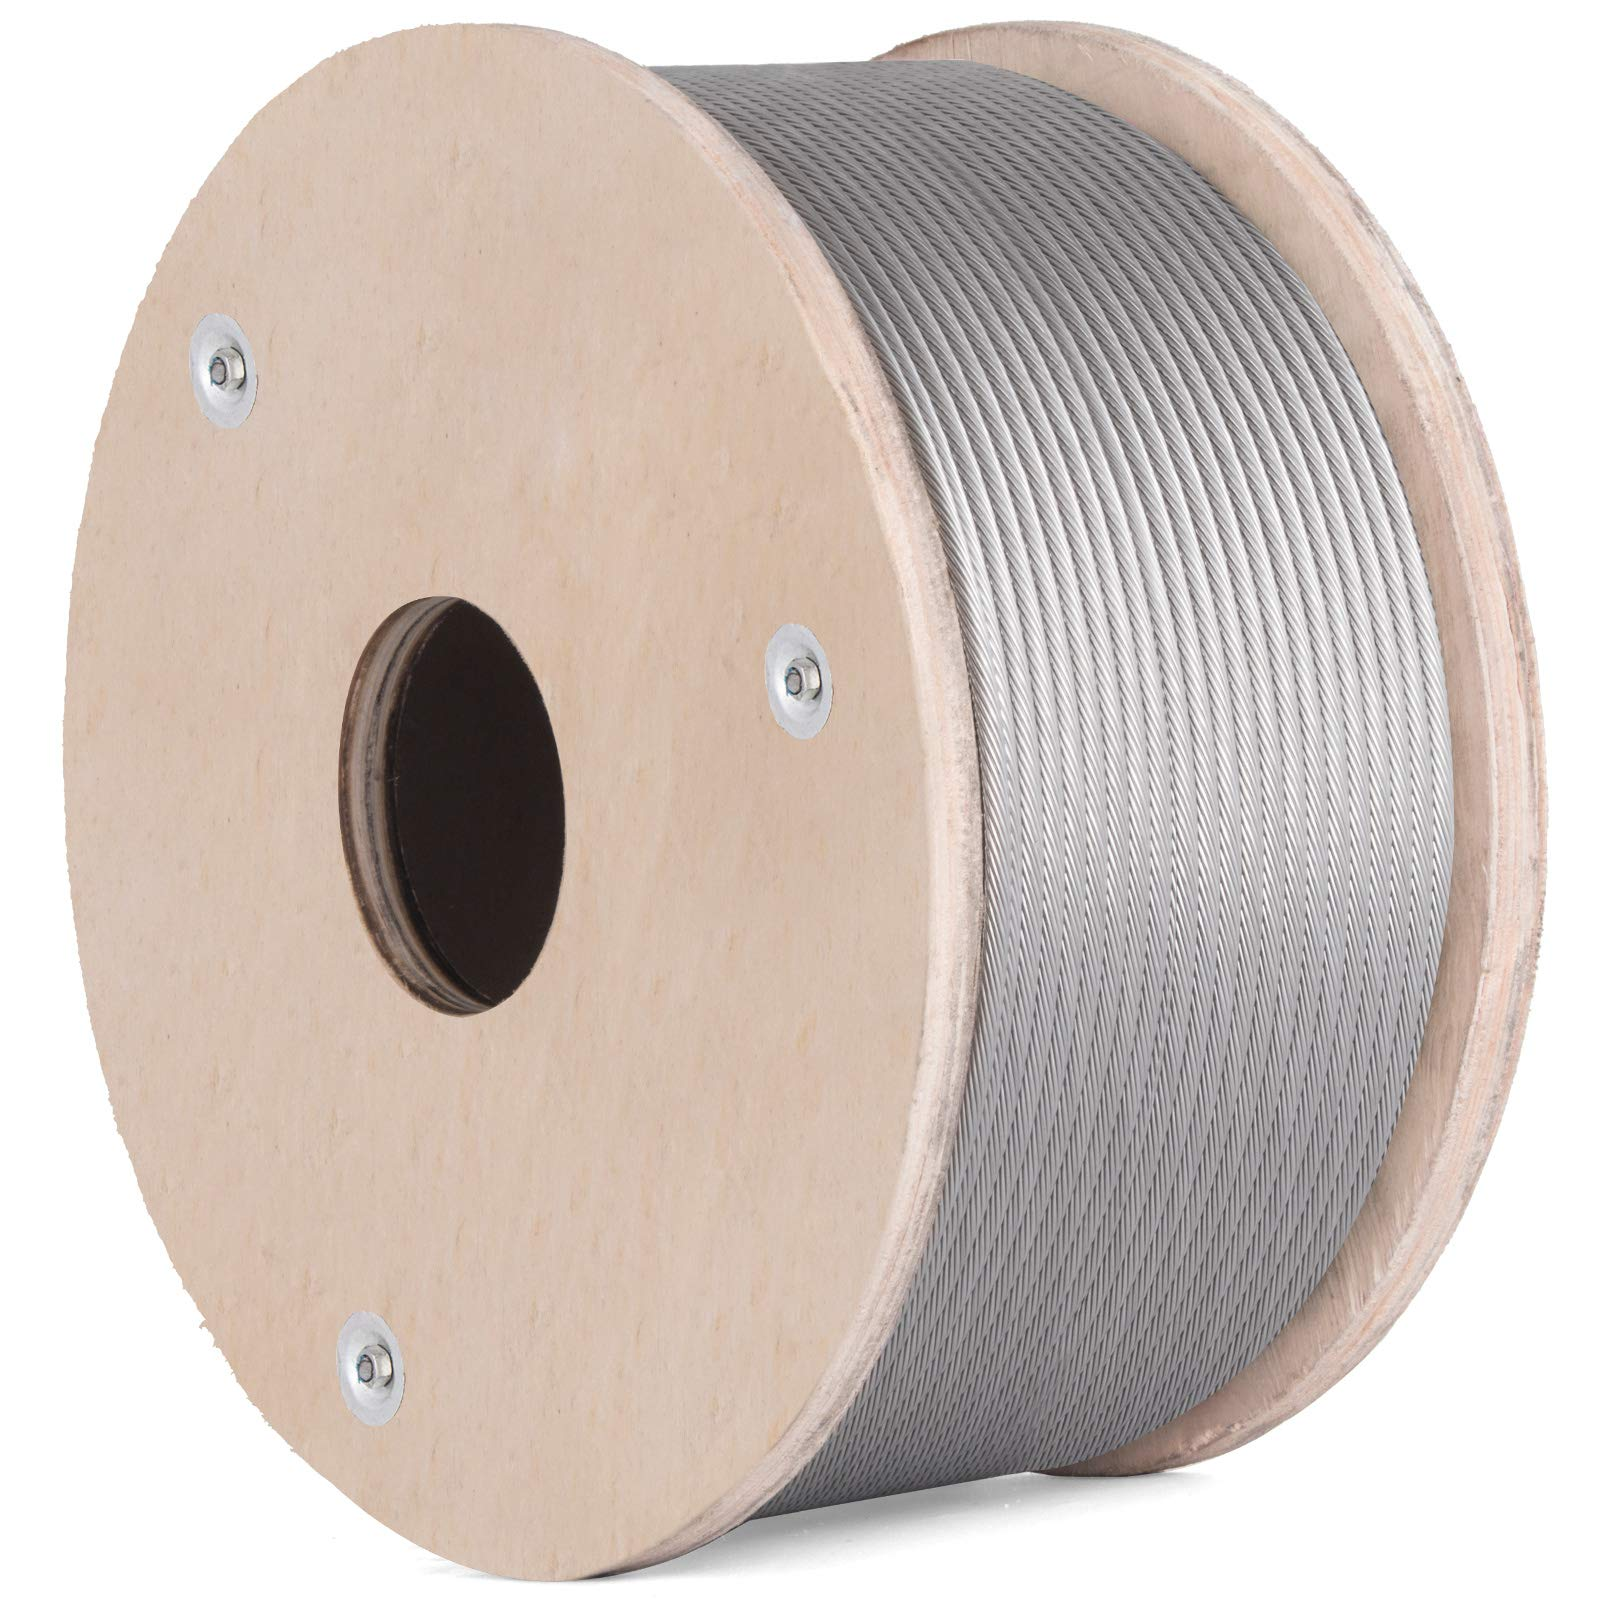 BestEquip T316 Stainless Steel Cable 200Feet Stainless Steel Wire Rope 3/16 Inch 1x19 Steel Cable for Railing Decking DIY Balustrade (3/16 Inch-200Feet)